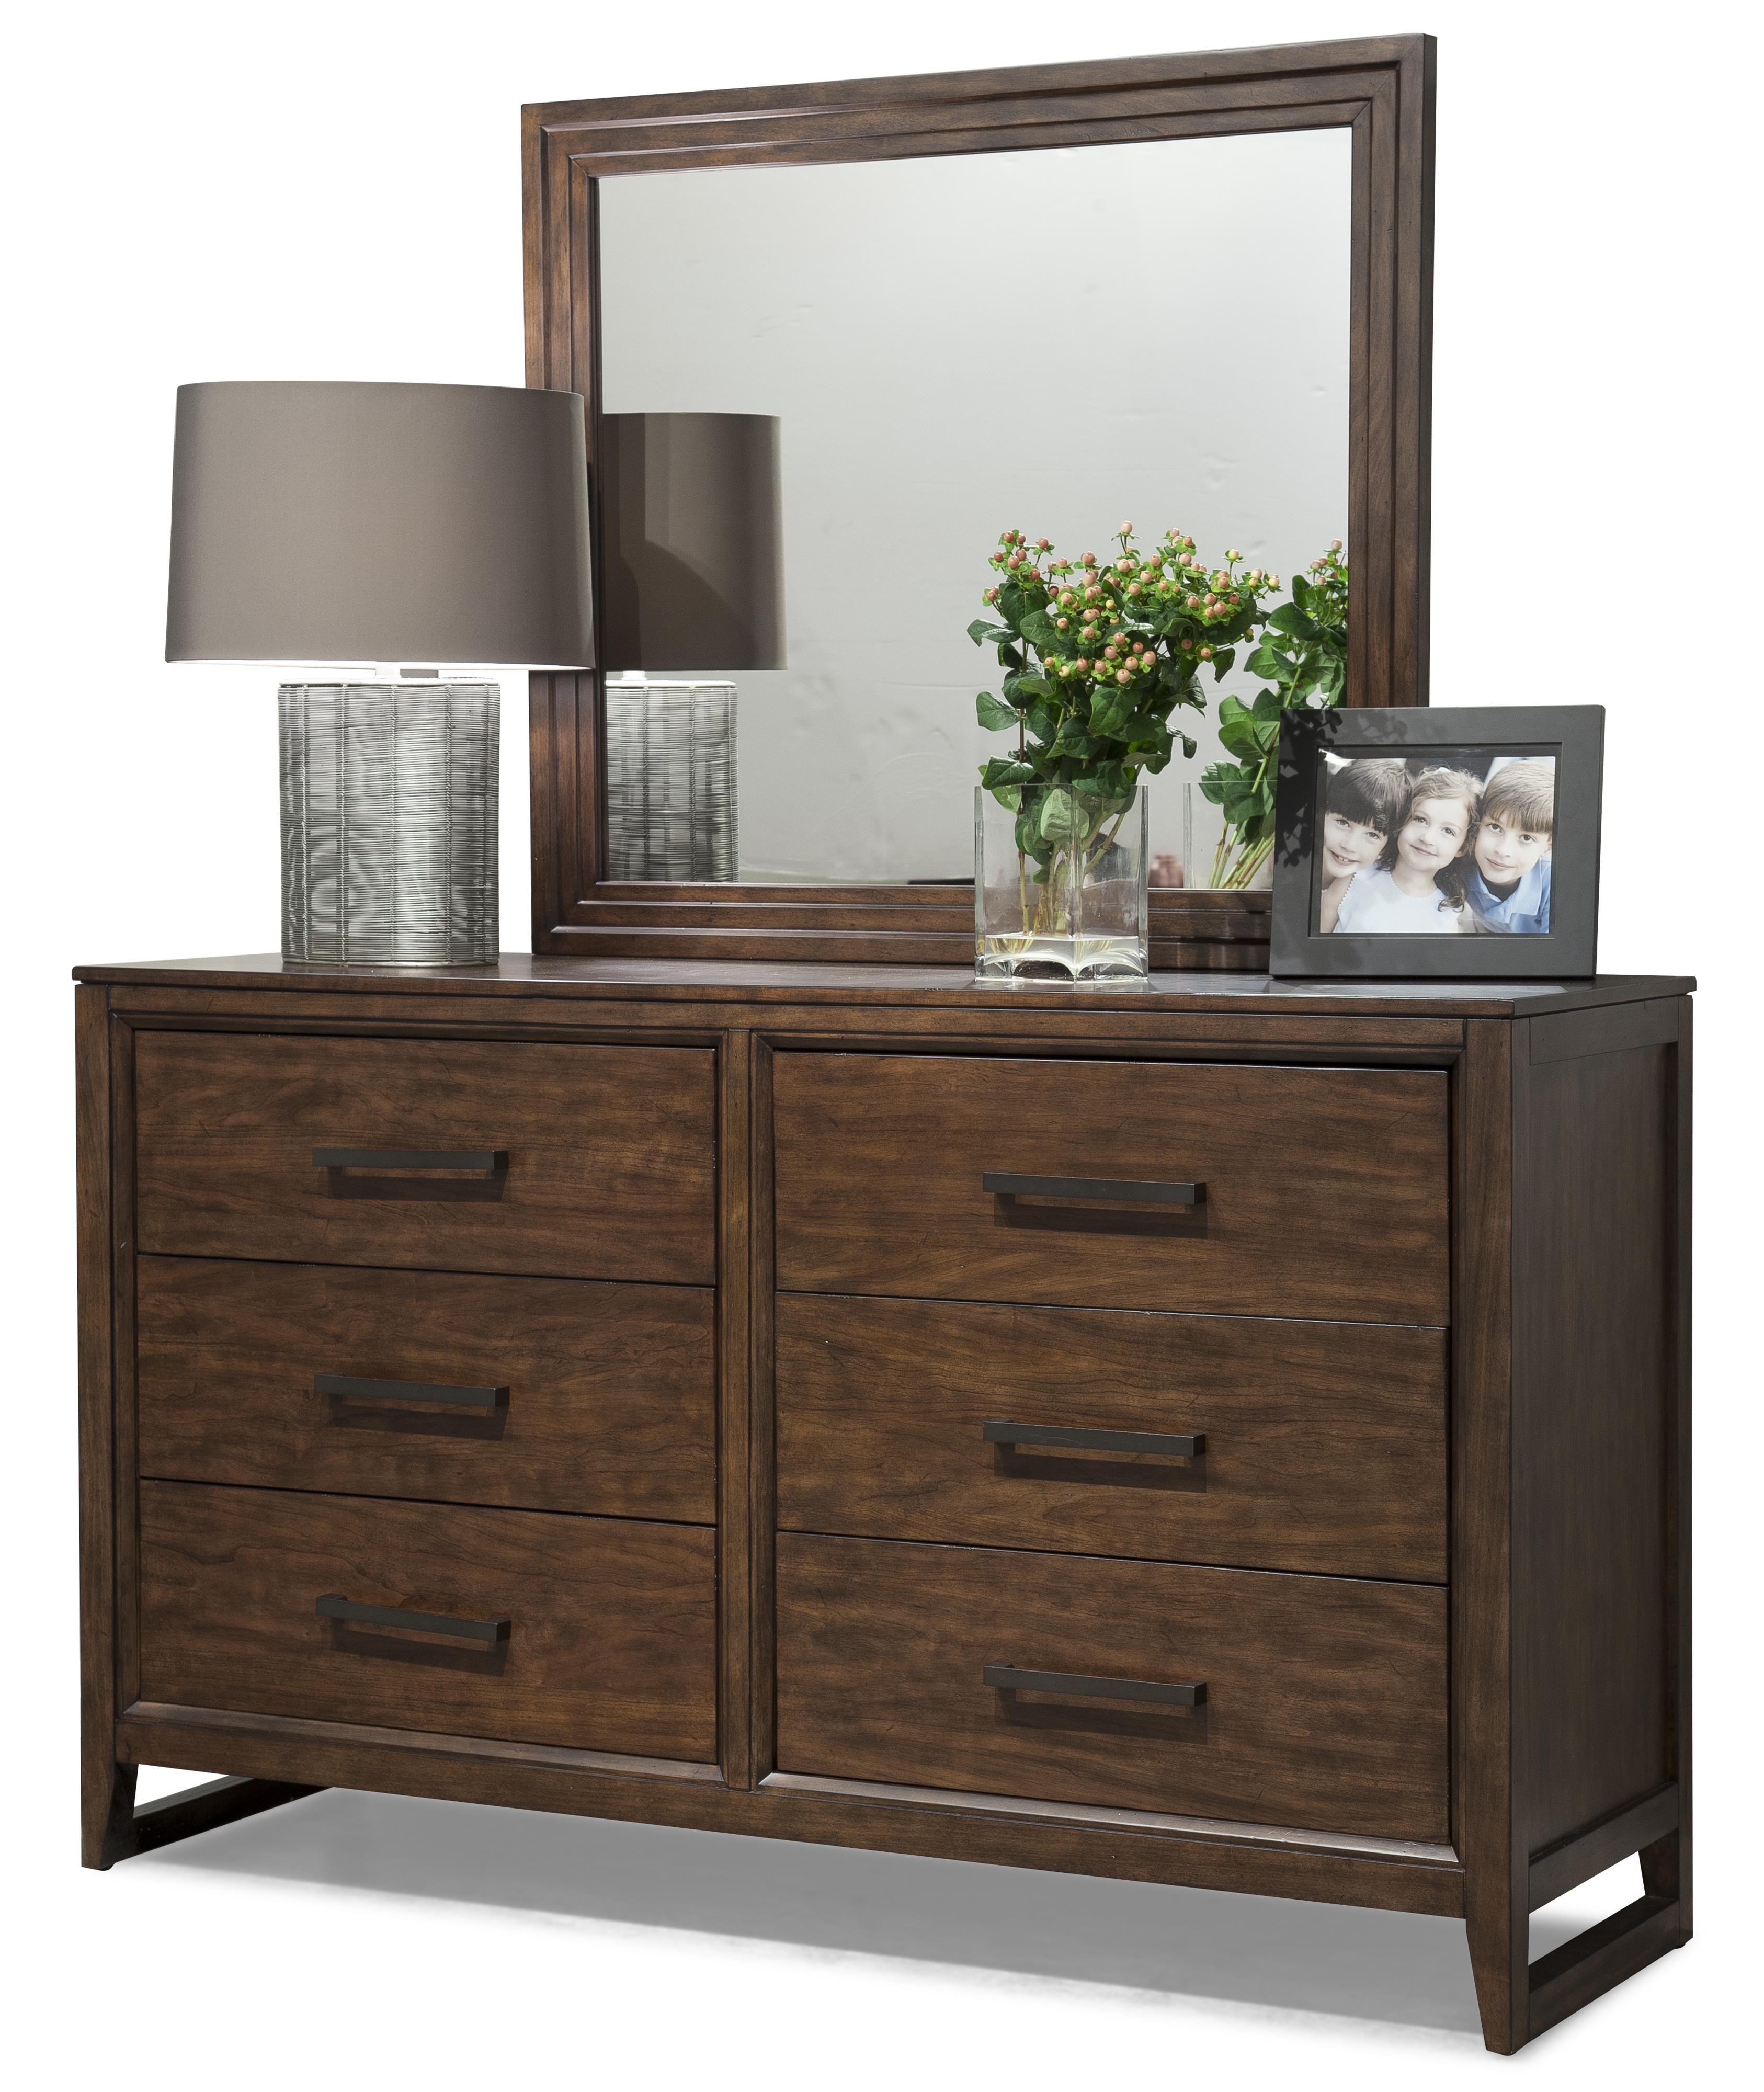 Cresent Fine Furniture Mercer Dresser & Mirror Set - Item Number: 5301+02